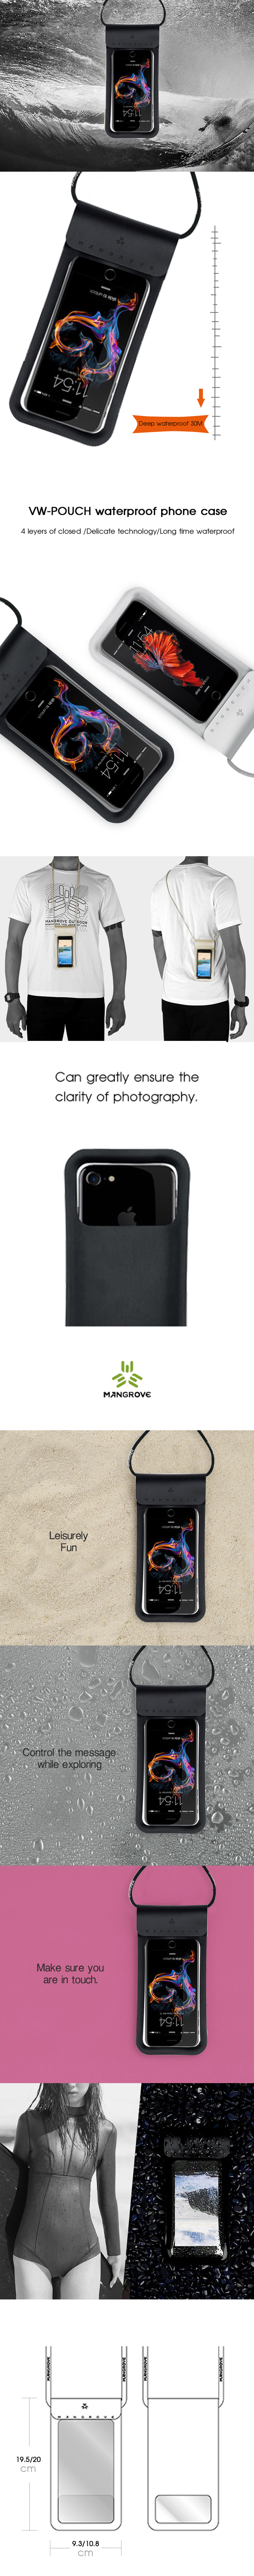 Mangrove-Waterproof-phone-case-ad1